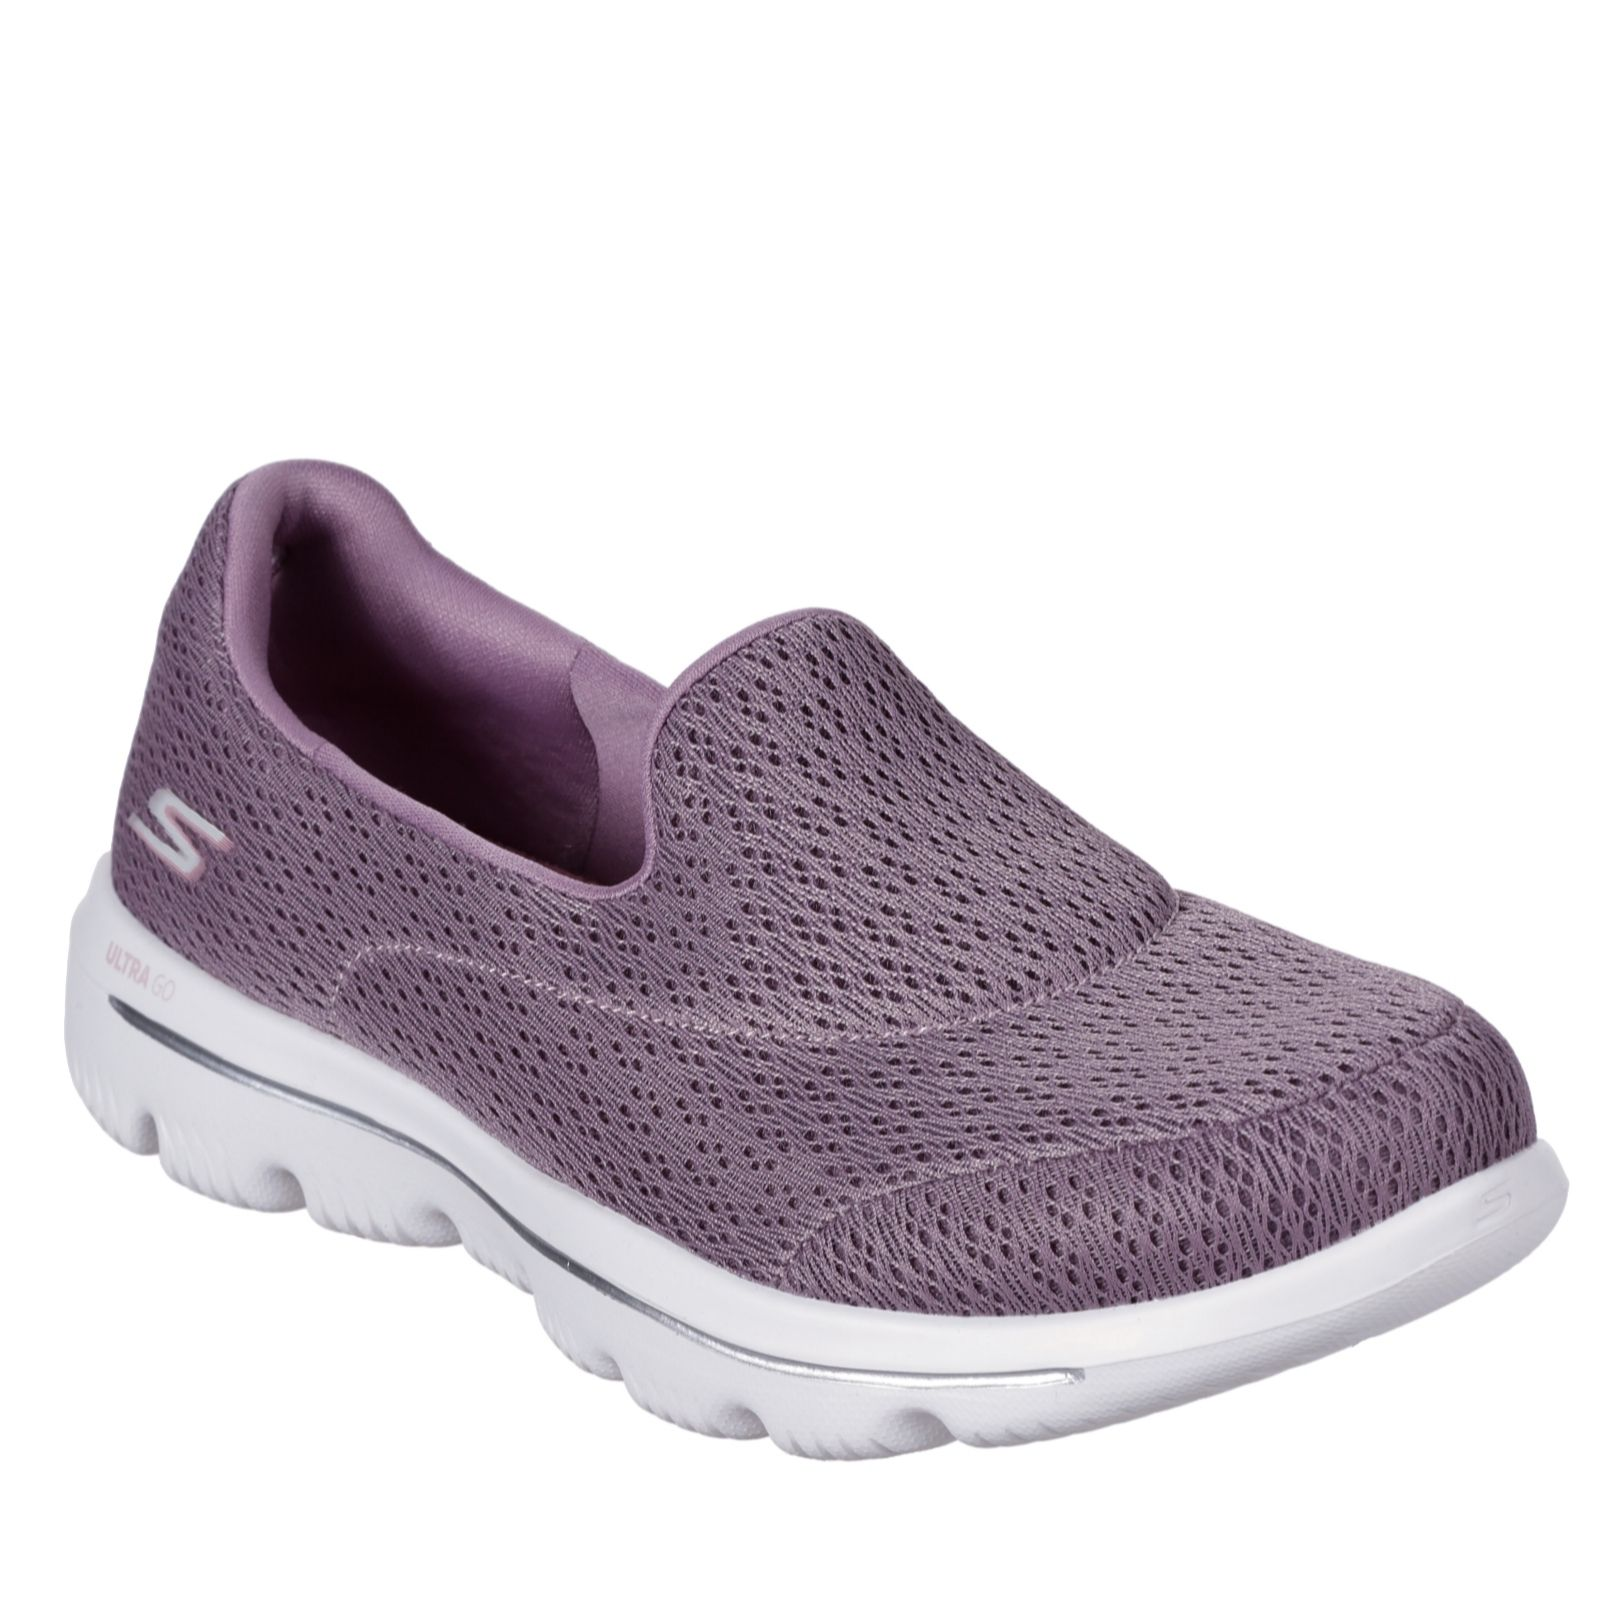 31dd2558d82b Skechers Go Walk Crochet Slip On Trainer - QVC UK